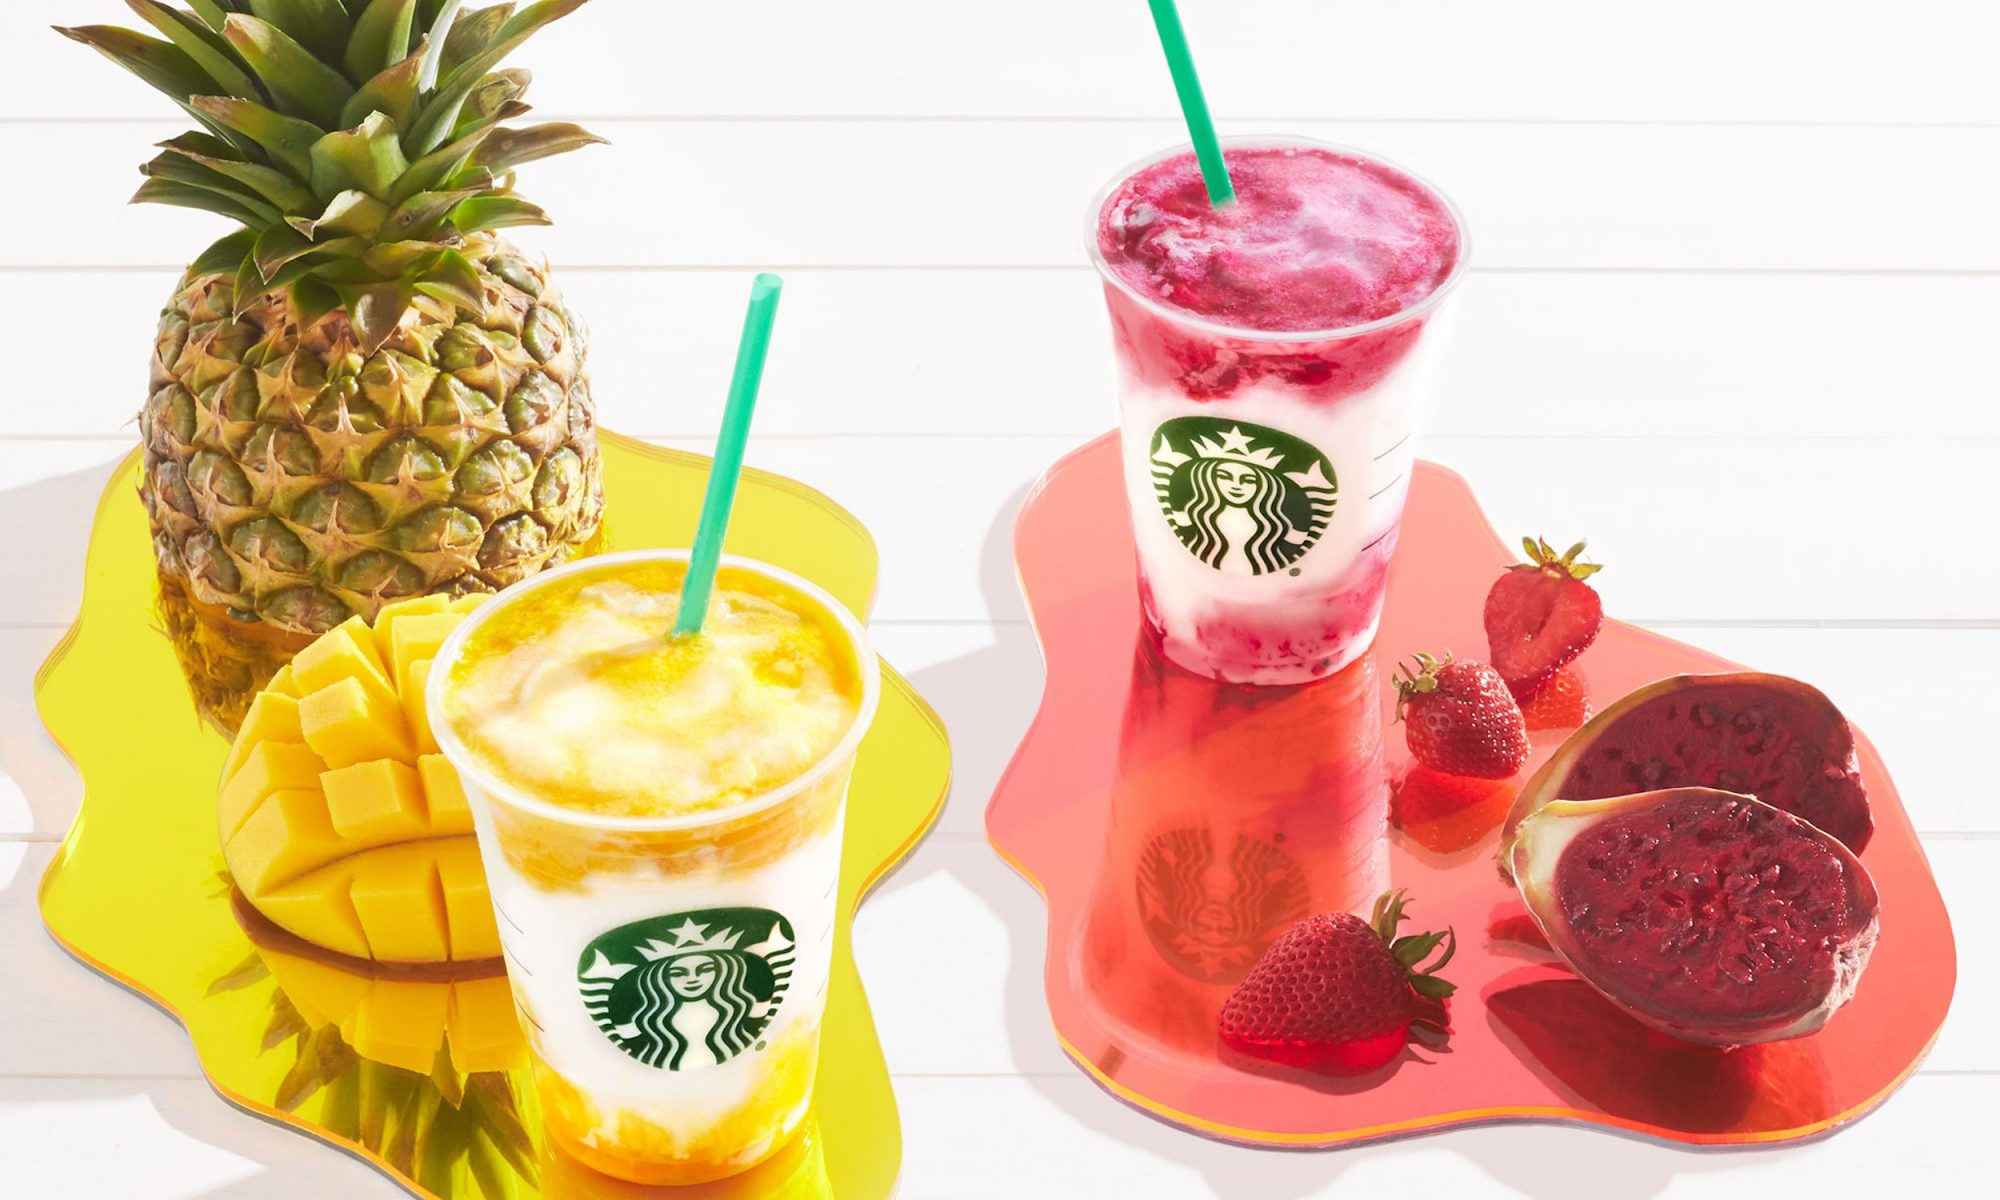 EC: Introducing Starbucks' New Mango Pineapple and Berry Prickly Pear Frappuccinos